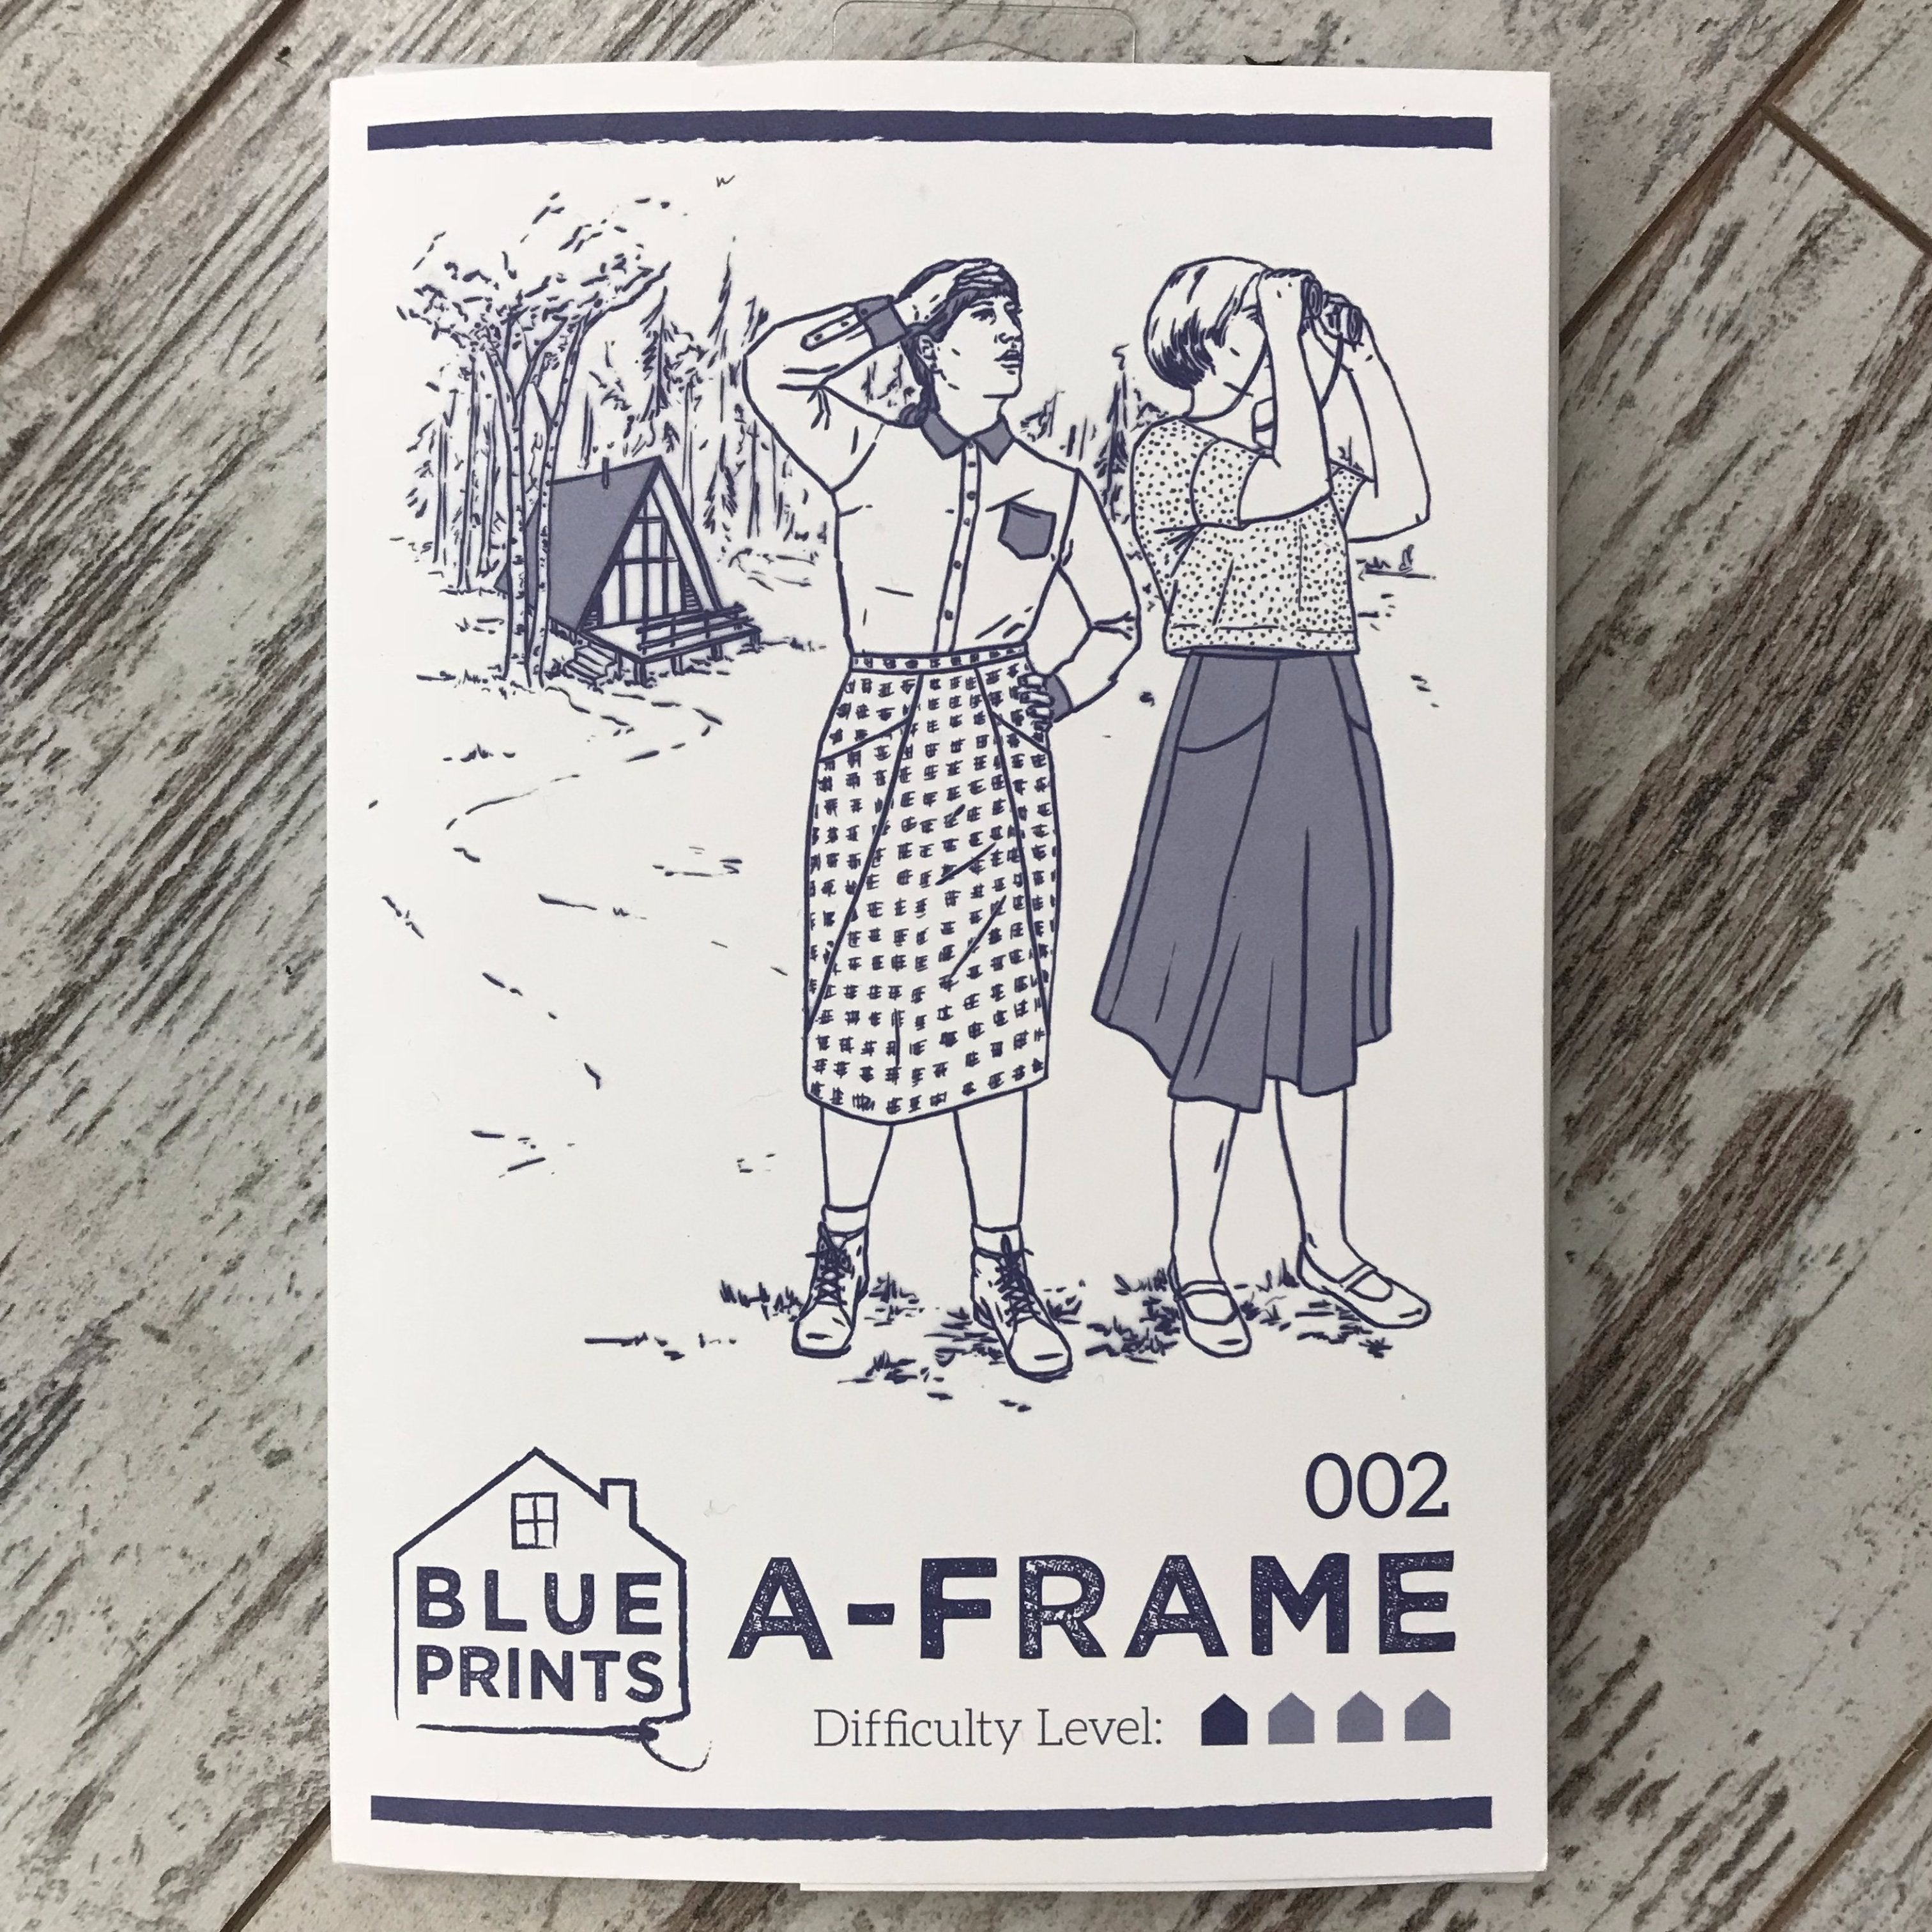 Blueprints for sewing a frame apparel pattern the cloth pocket blueprints for sewing a frame apparel pattern malvernweather Choice Image